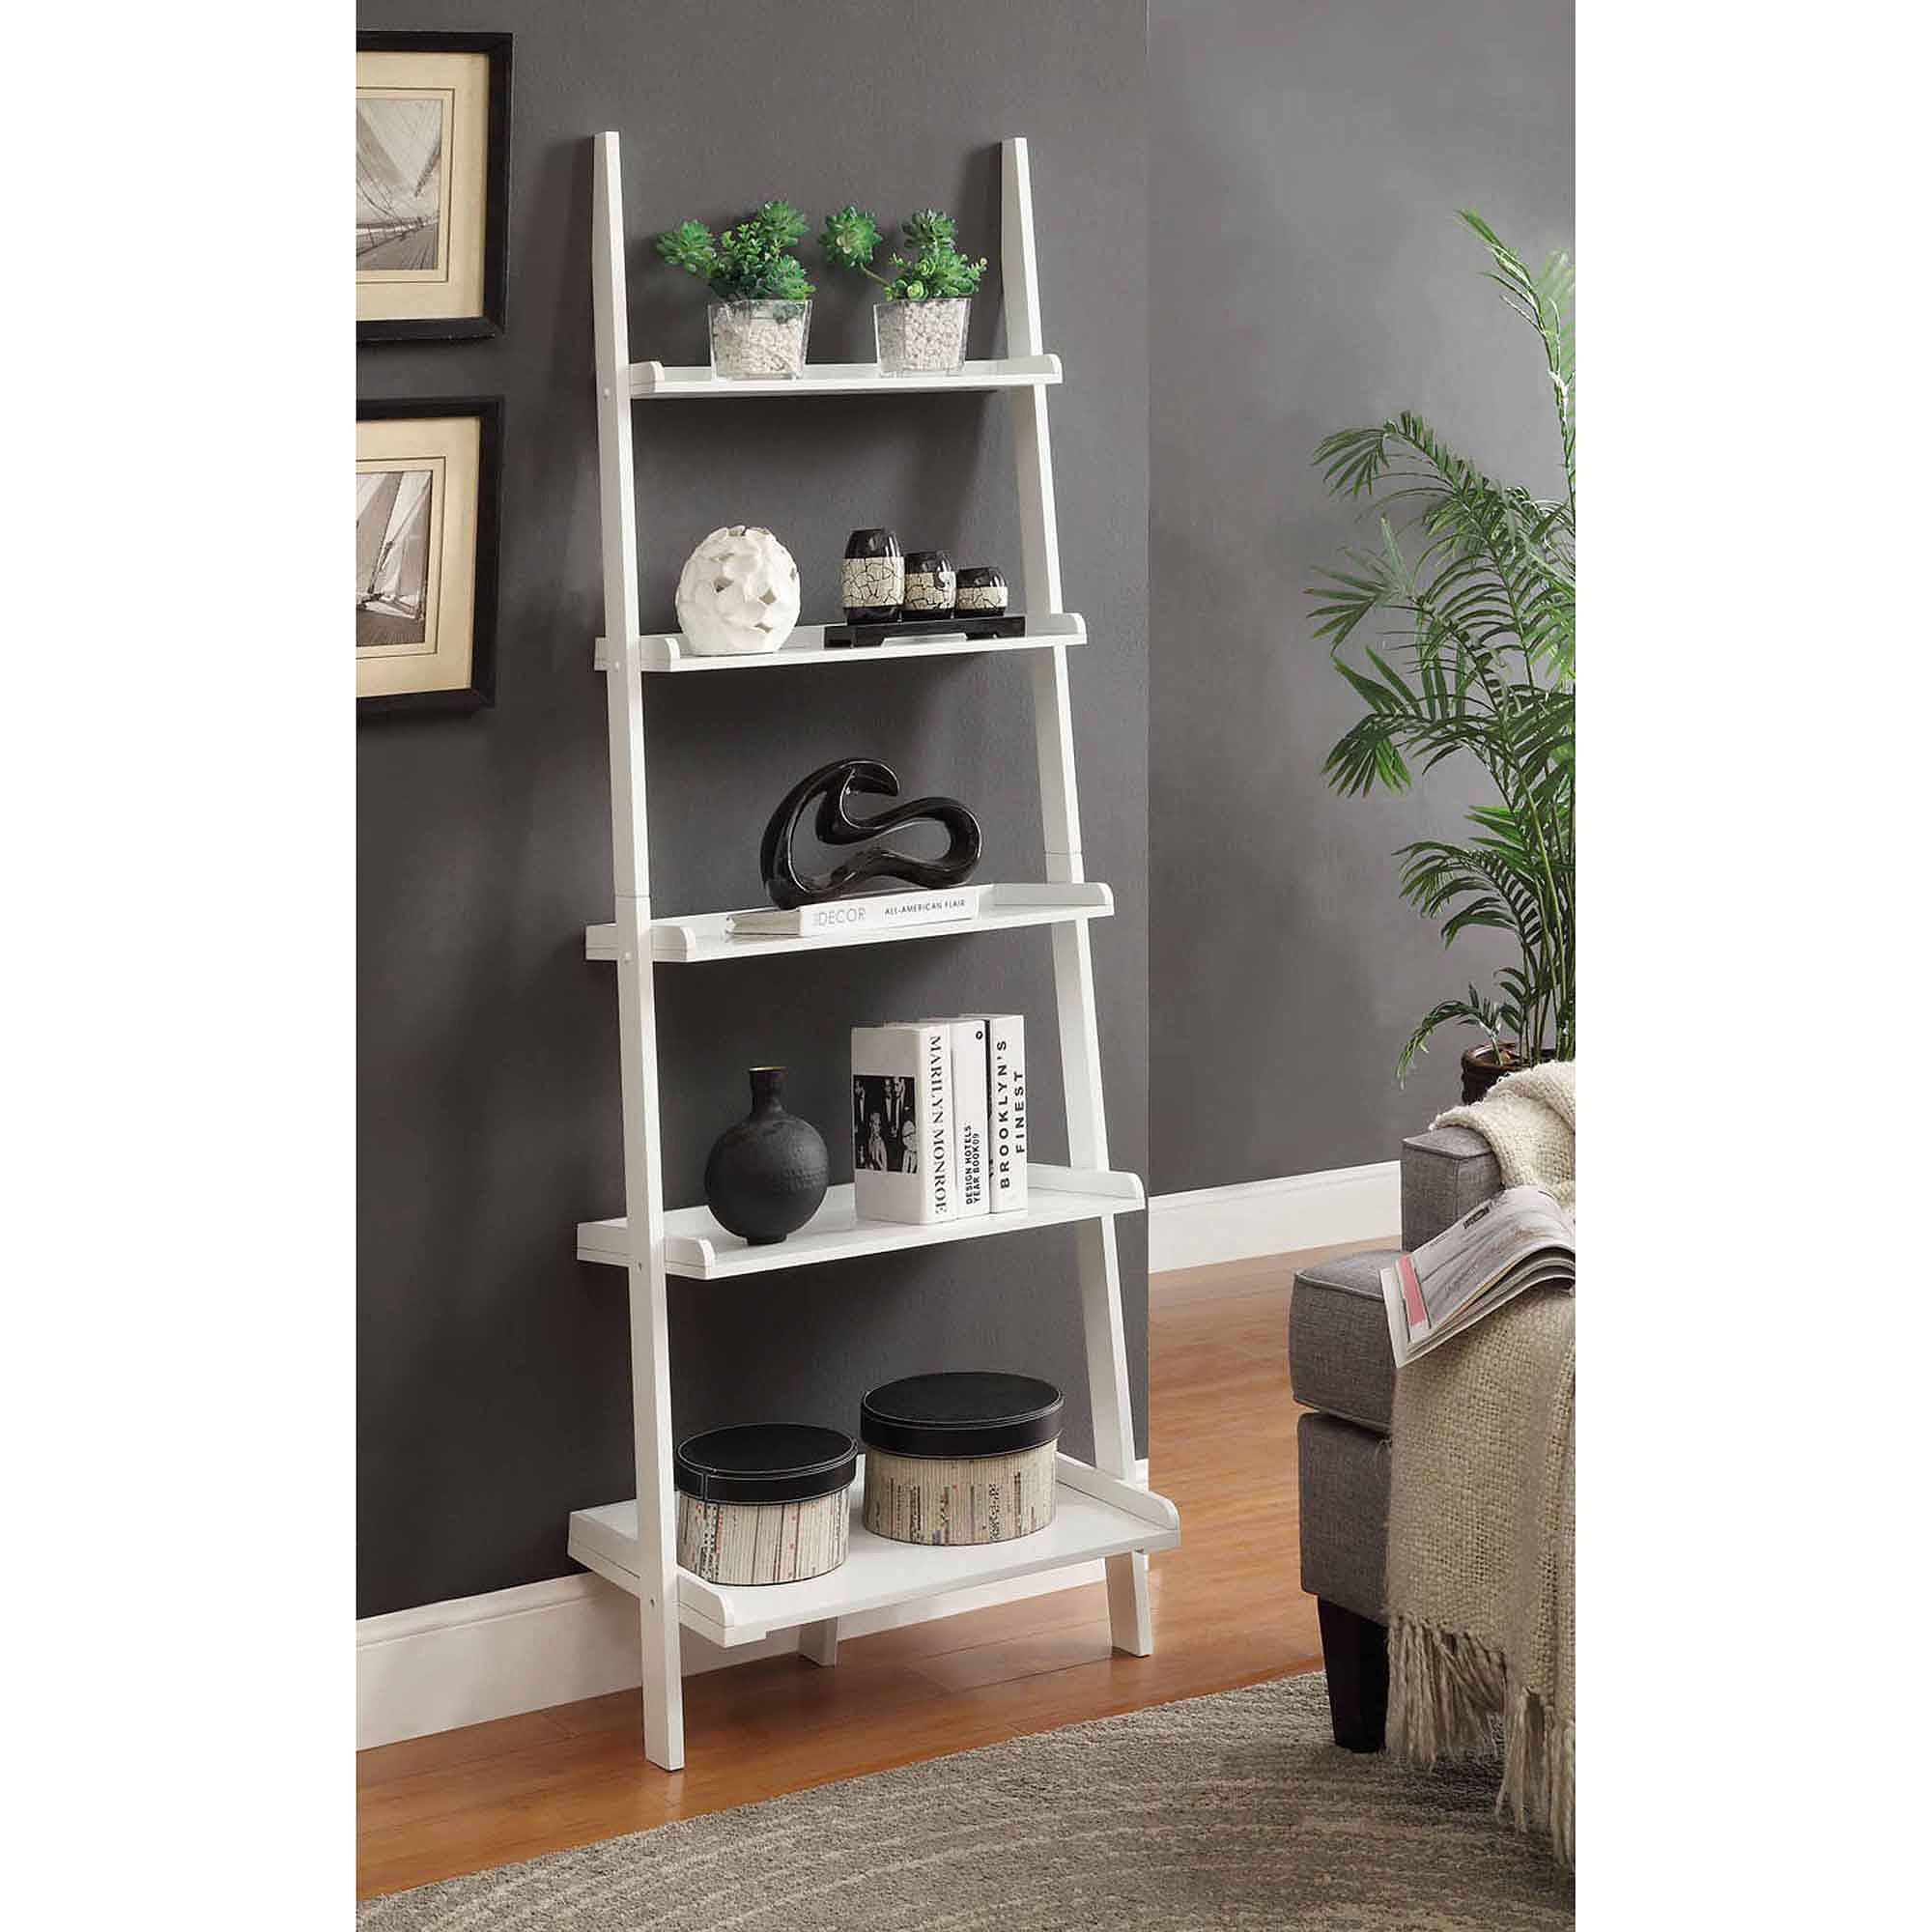 The convenience concepts french country bookshelf ladder in white is